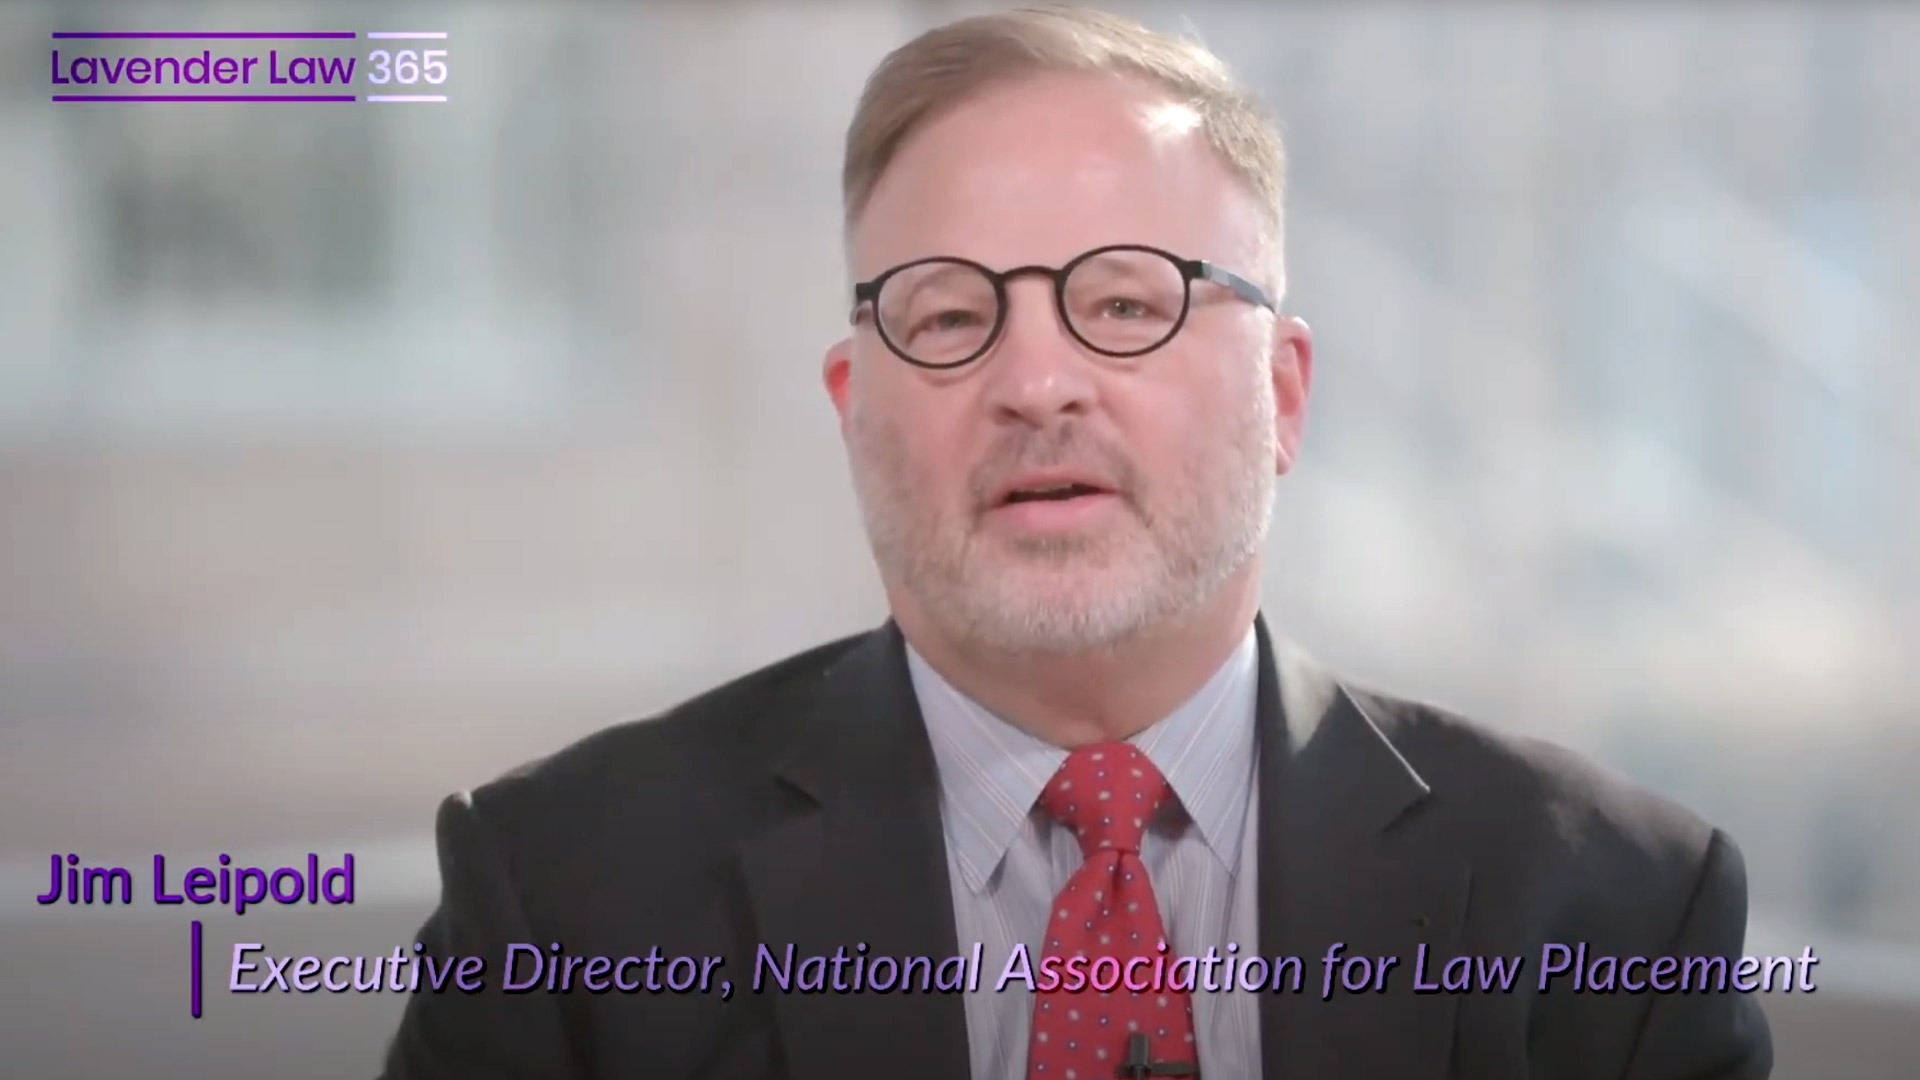 Jim Leipold on Diversity, Equity and Inclusion and the Lavender Law 365® Program